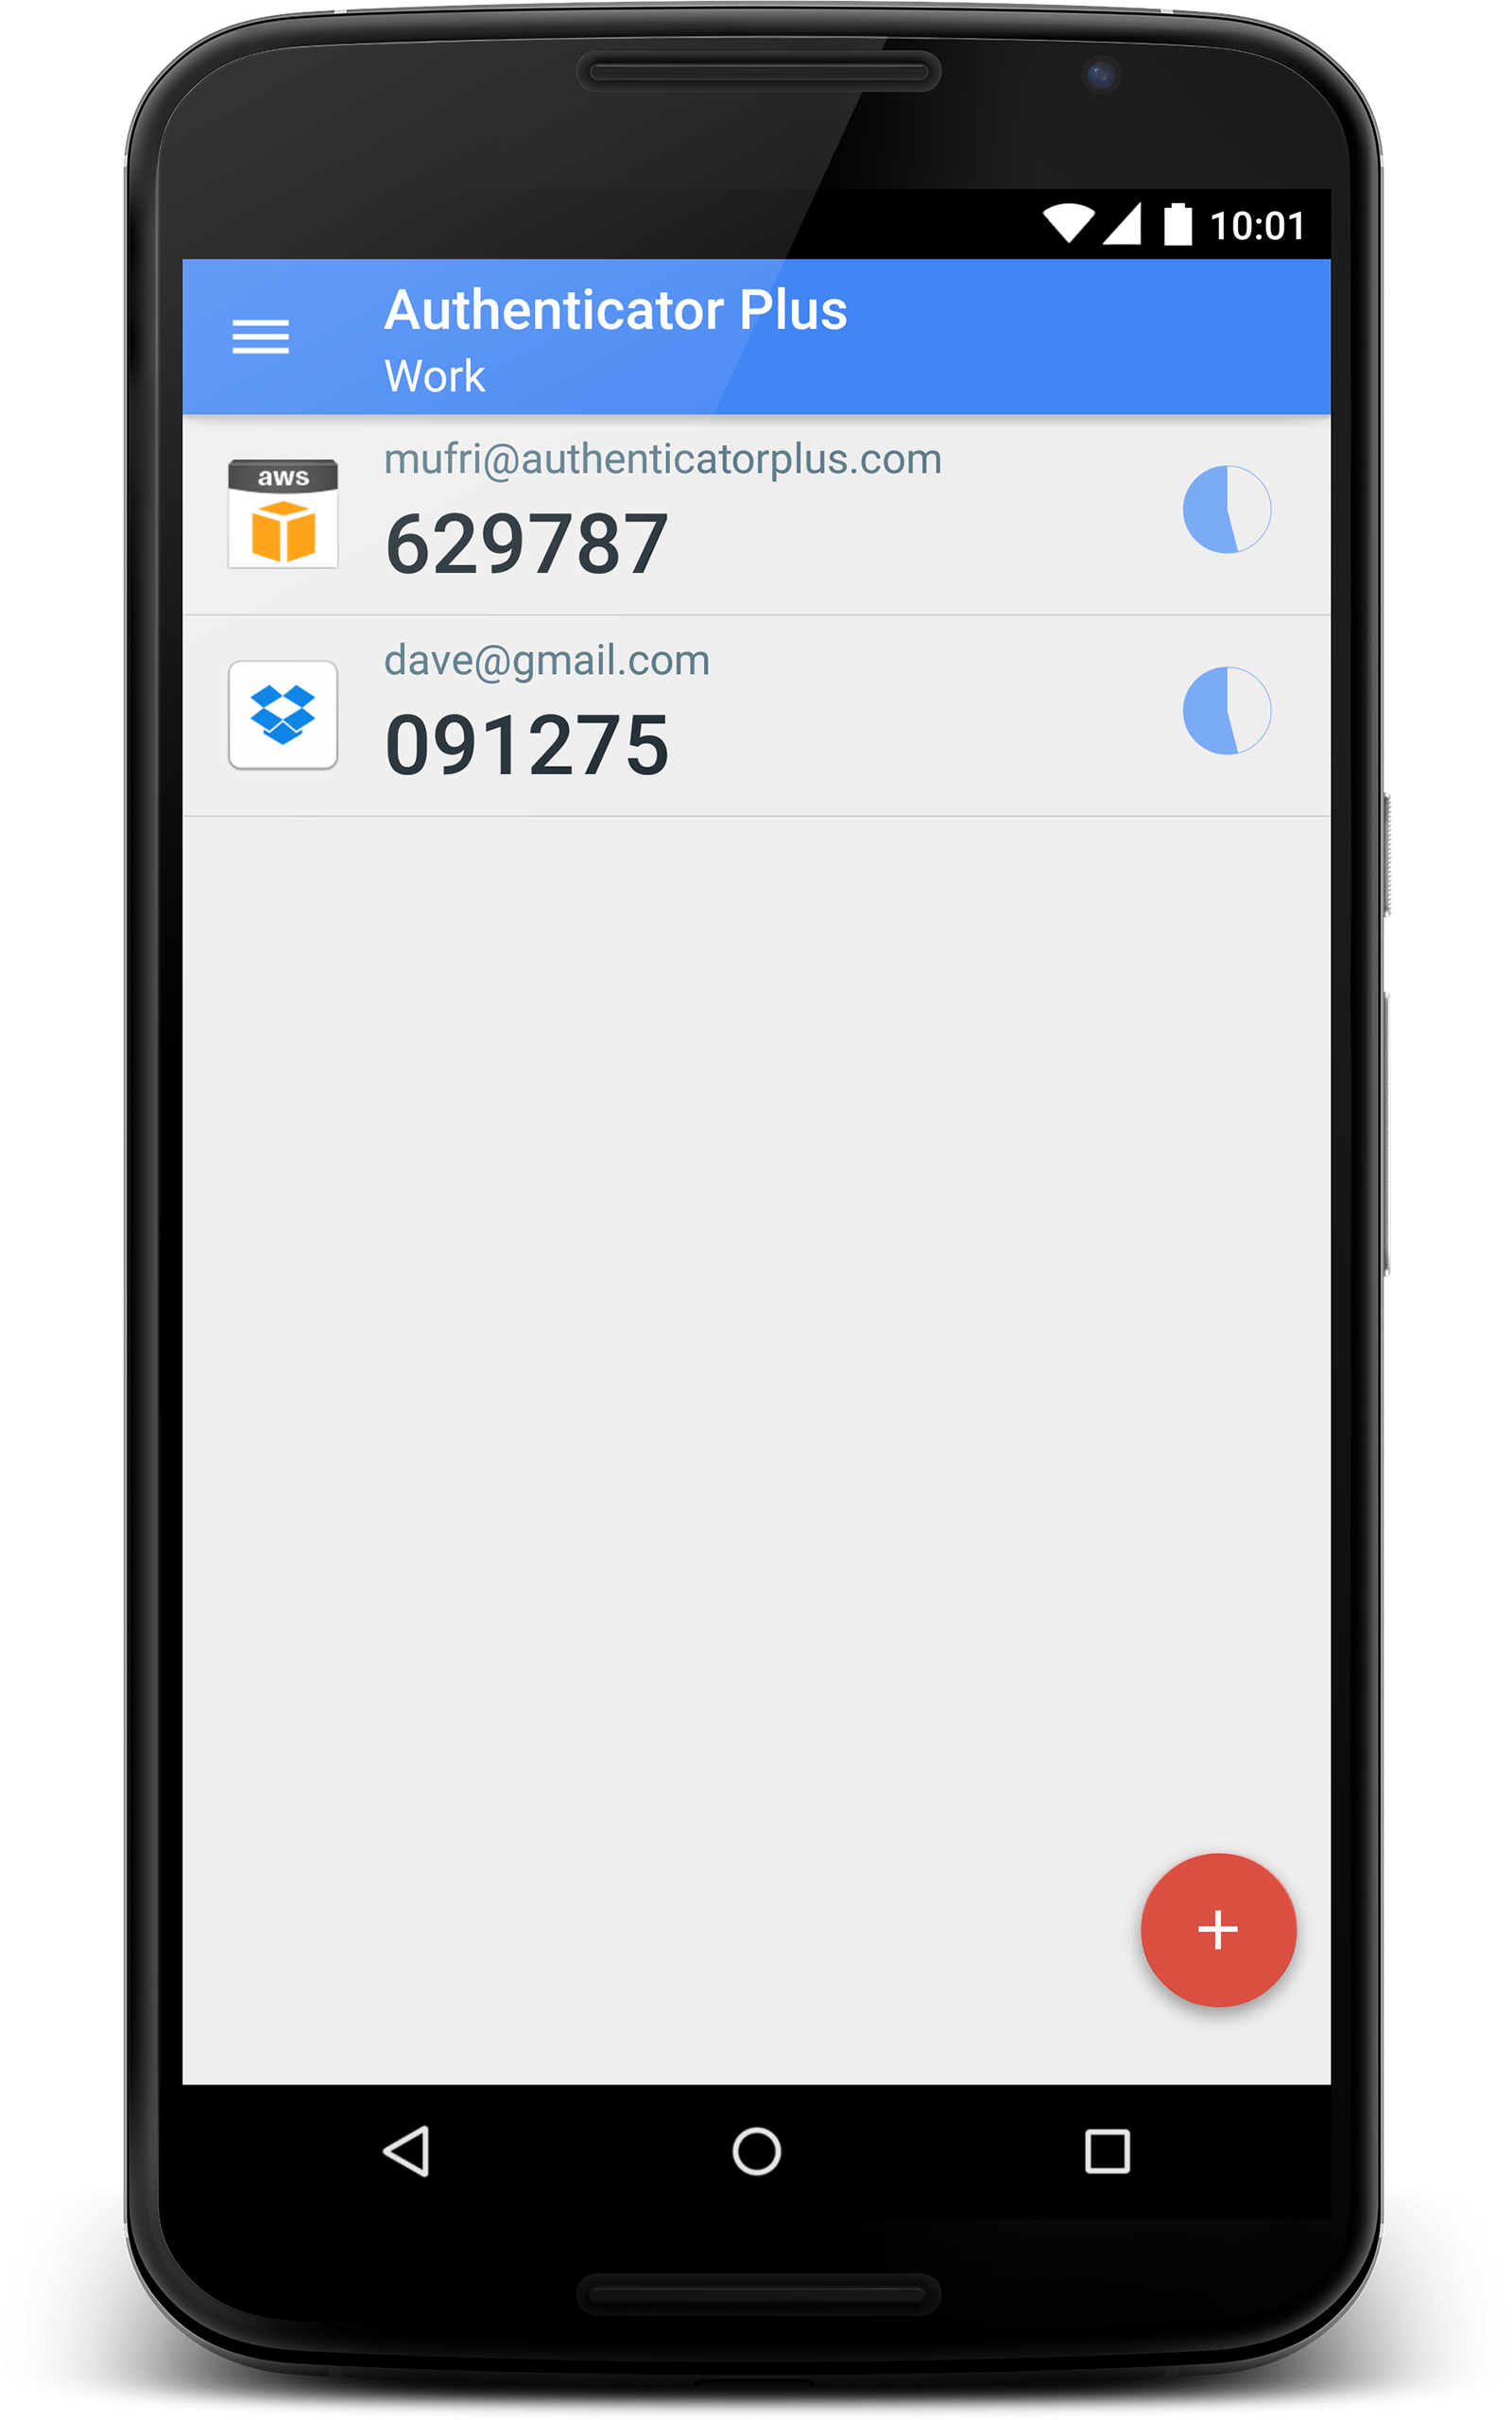 how to get authenticator on new phone